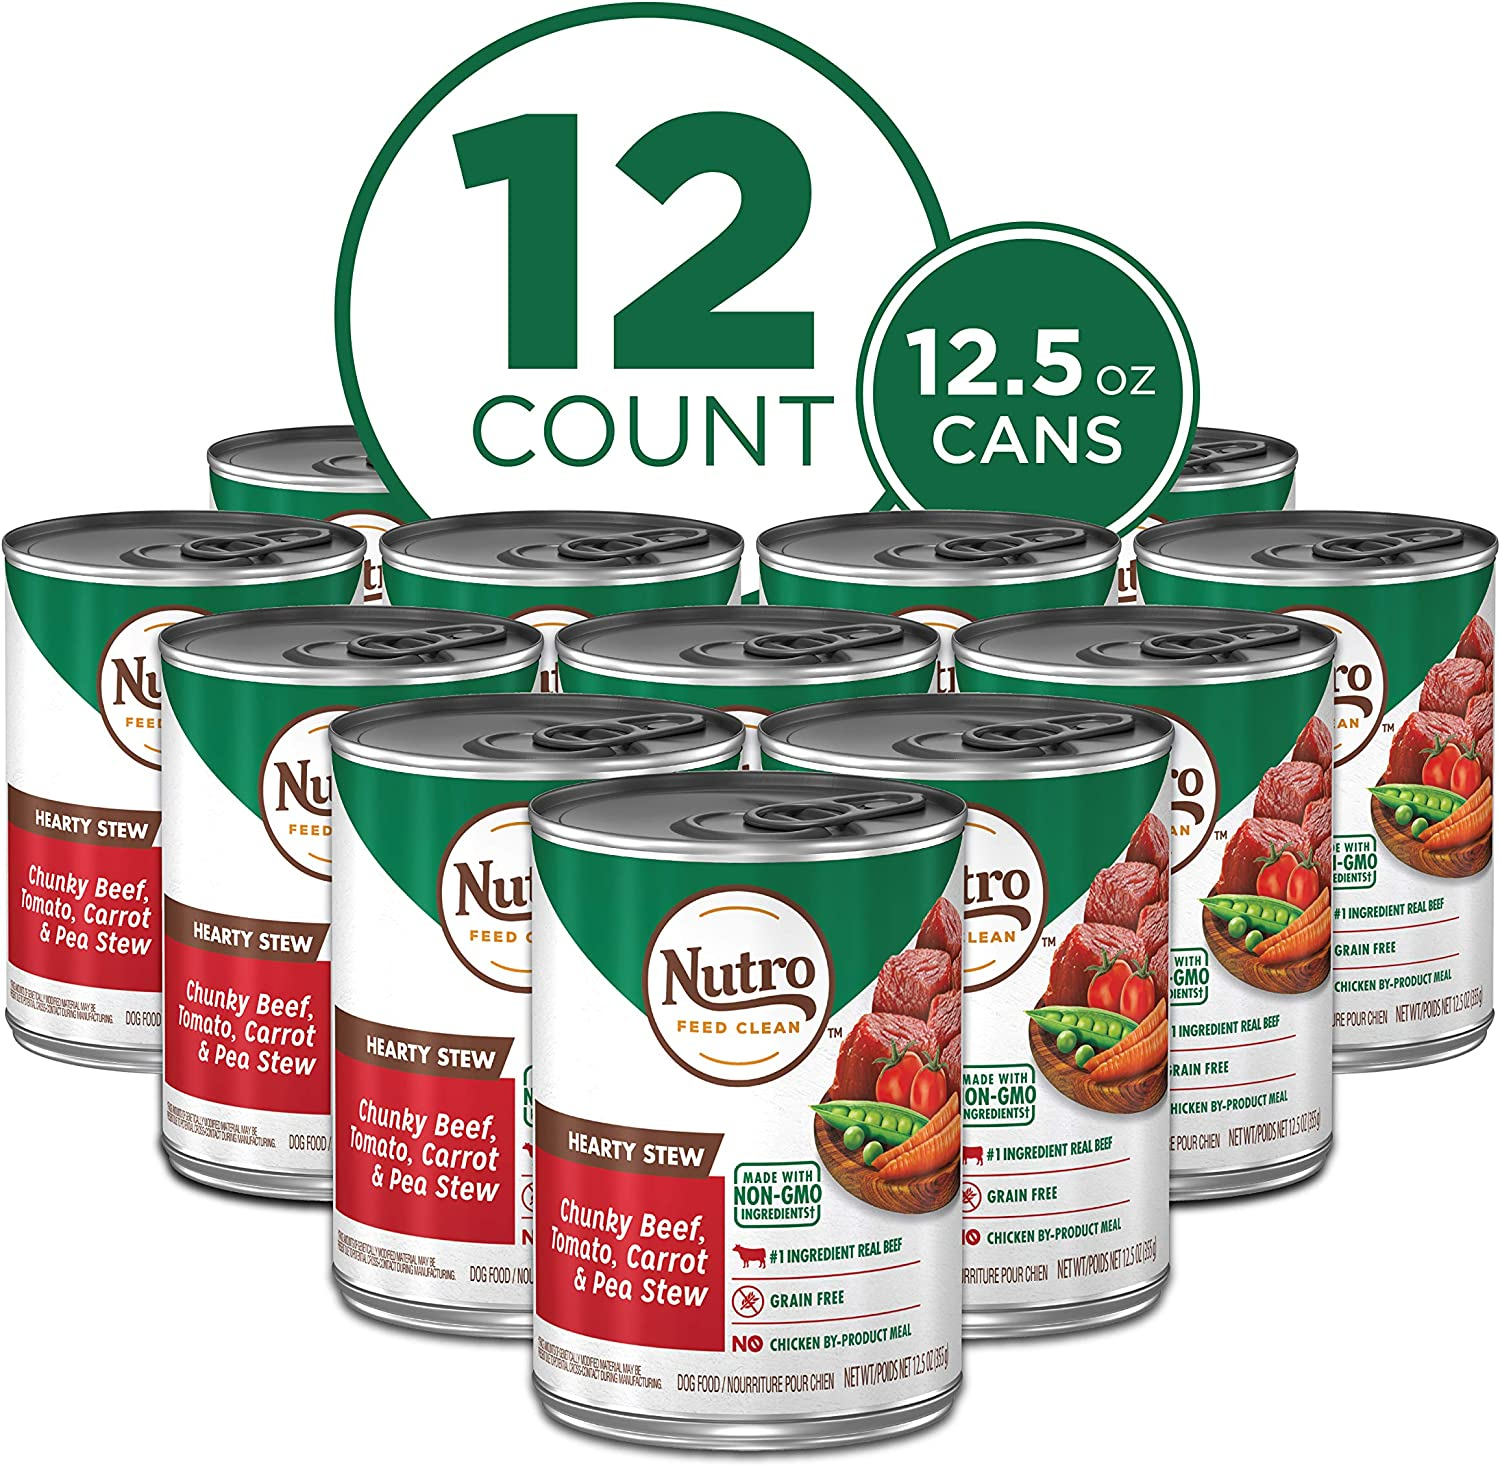 NUTRO HEARTY STEW Adult High Protein Natural Wet Dog Food Cuts in Gravy Chunky Beef, Tomato, Carrot & Pea Stew, (12) 12.5 oz. Cans